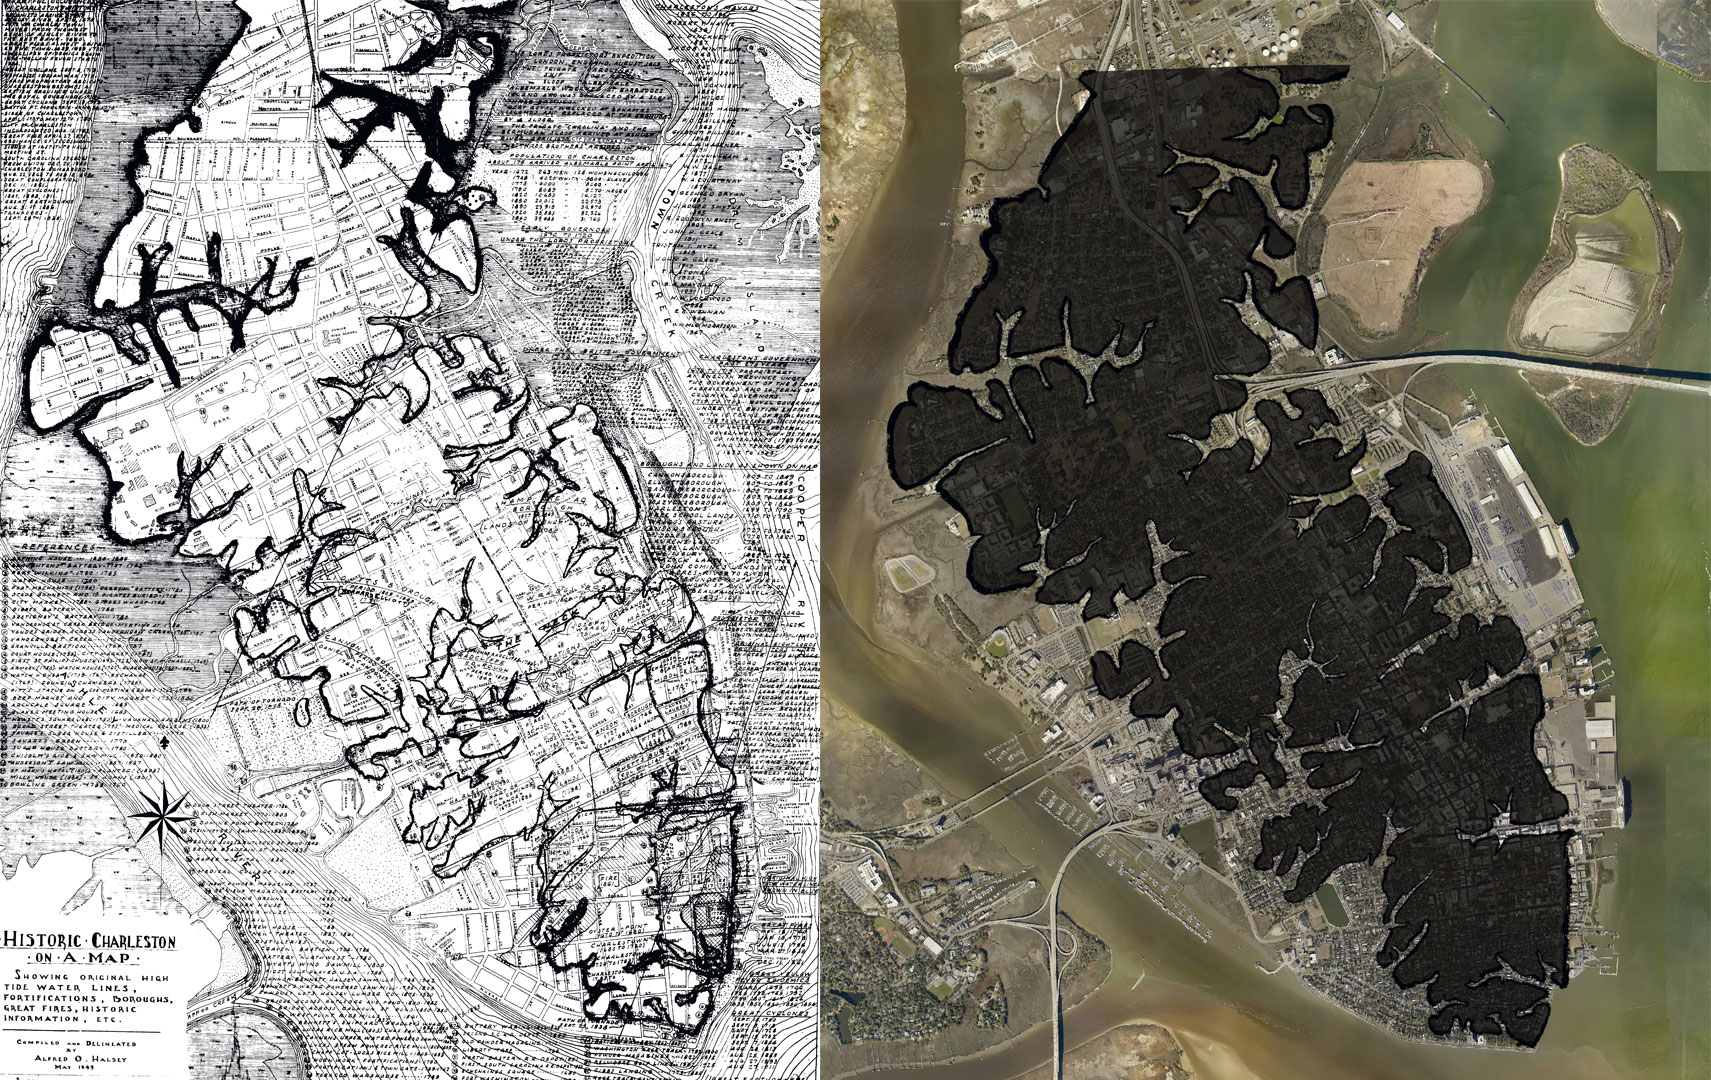 A historic Halsey Map (left) shows the original creek bed lines on the peninsula, and (right) the map is overlaid on a current aerial image, indicating areas that once were waterways. Images courtesy of the city of charleston Flooding & Sea Level rise Strategy, February 2019